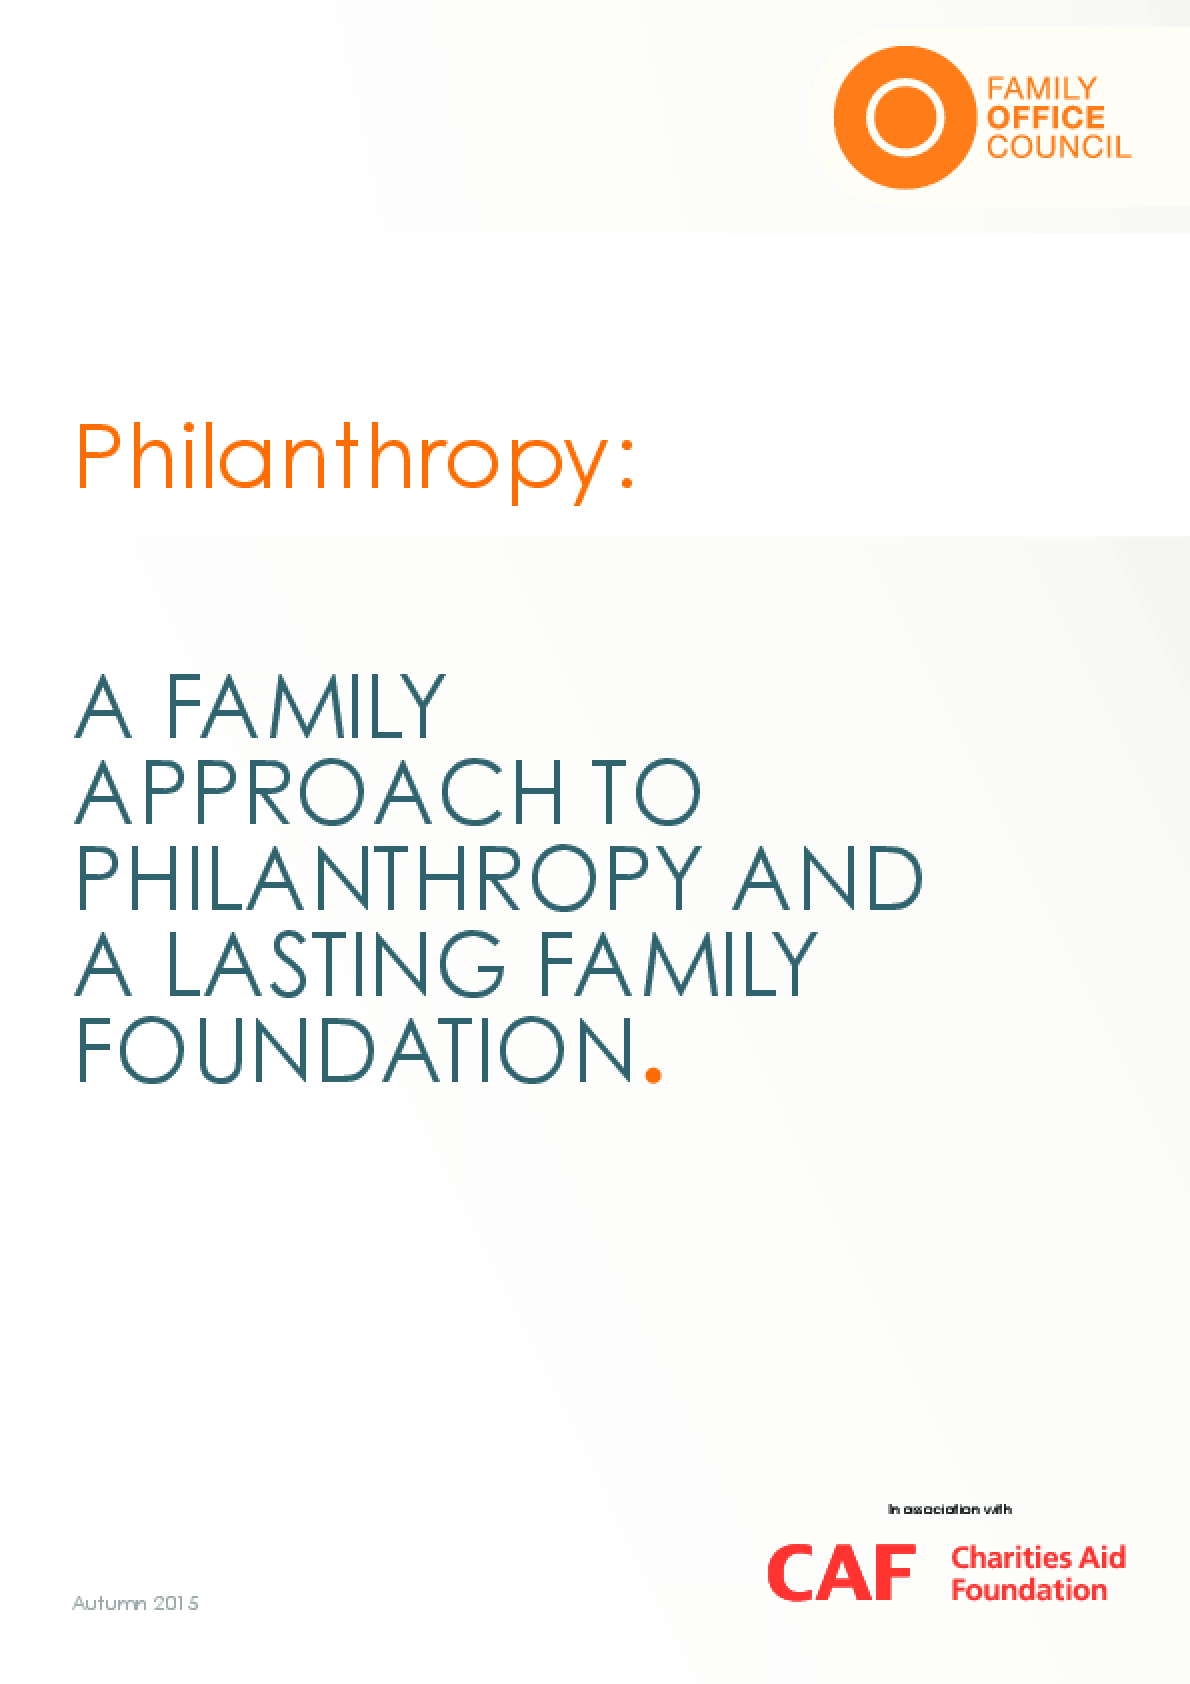 A Family Approach to Philanthropy and a Lasting Family Foundation